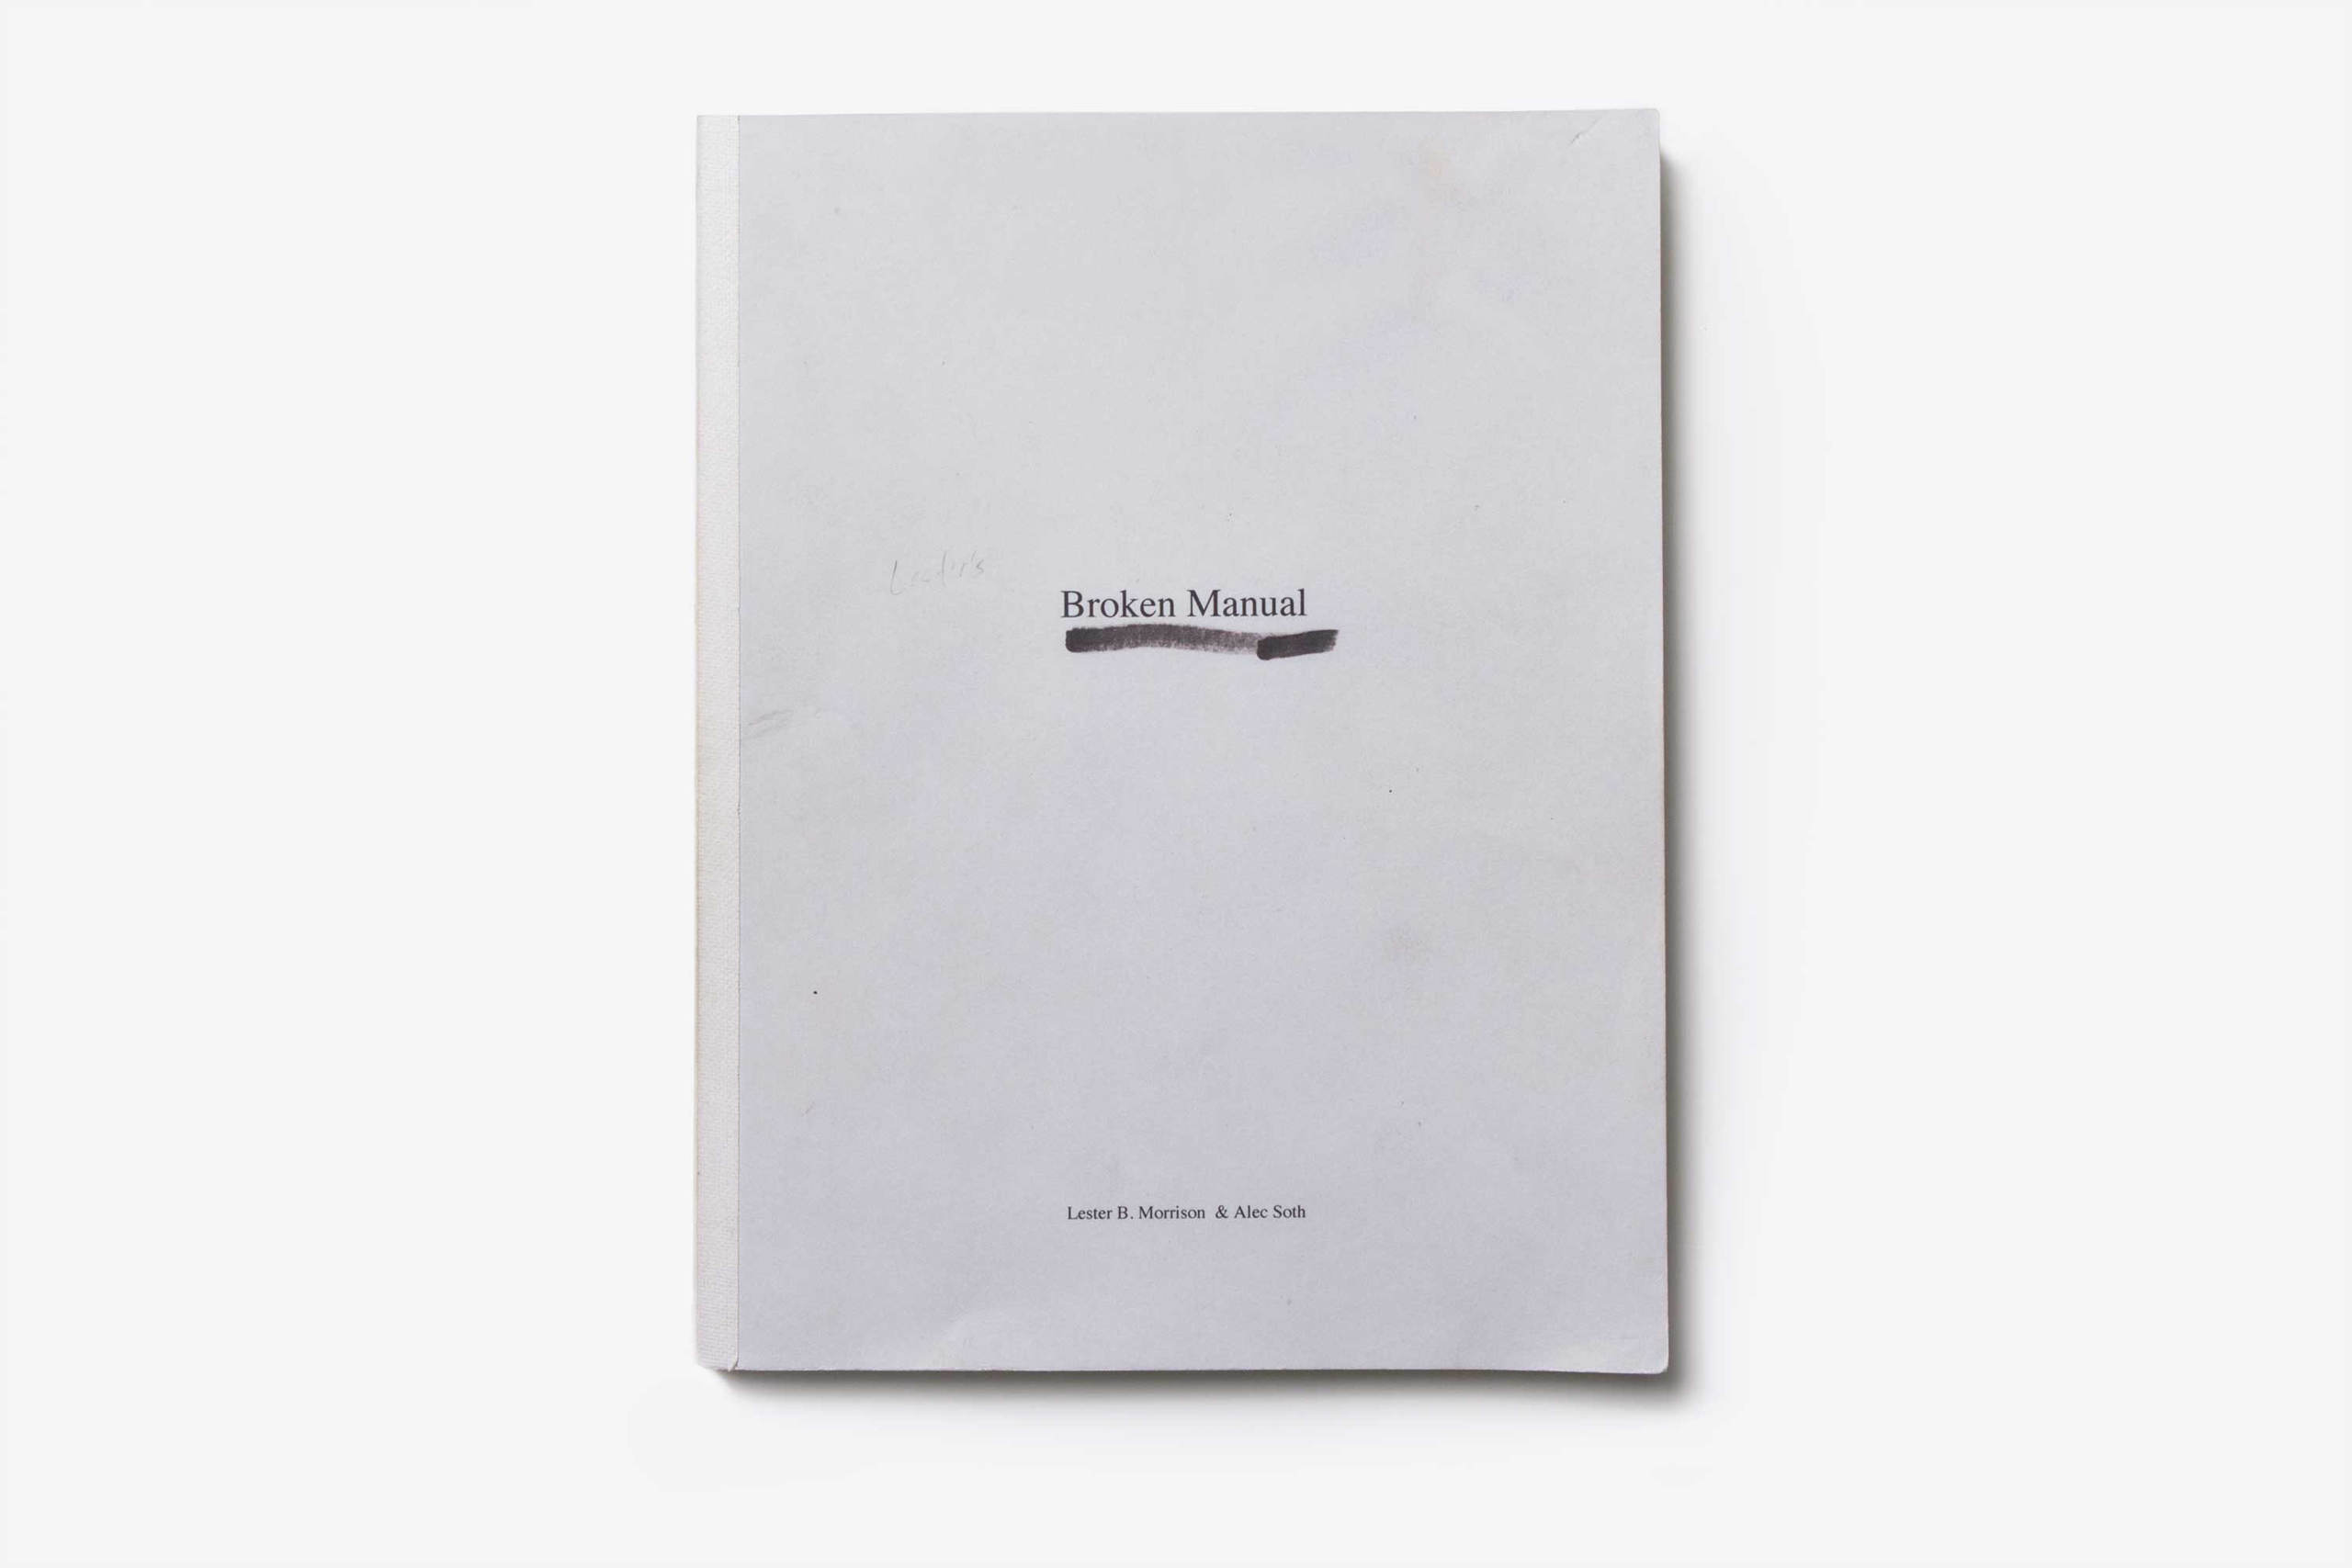 Broken Manual, Alec Soth                               Published by Steidl